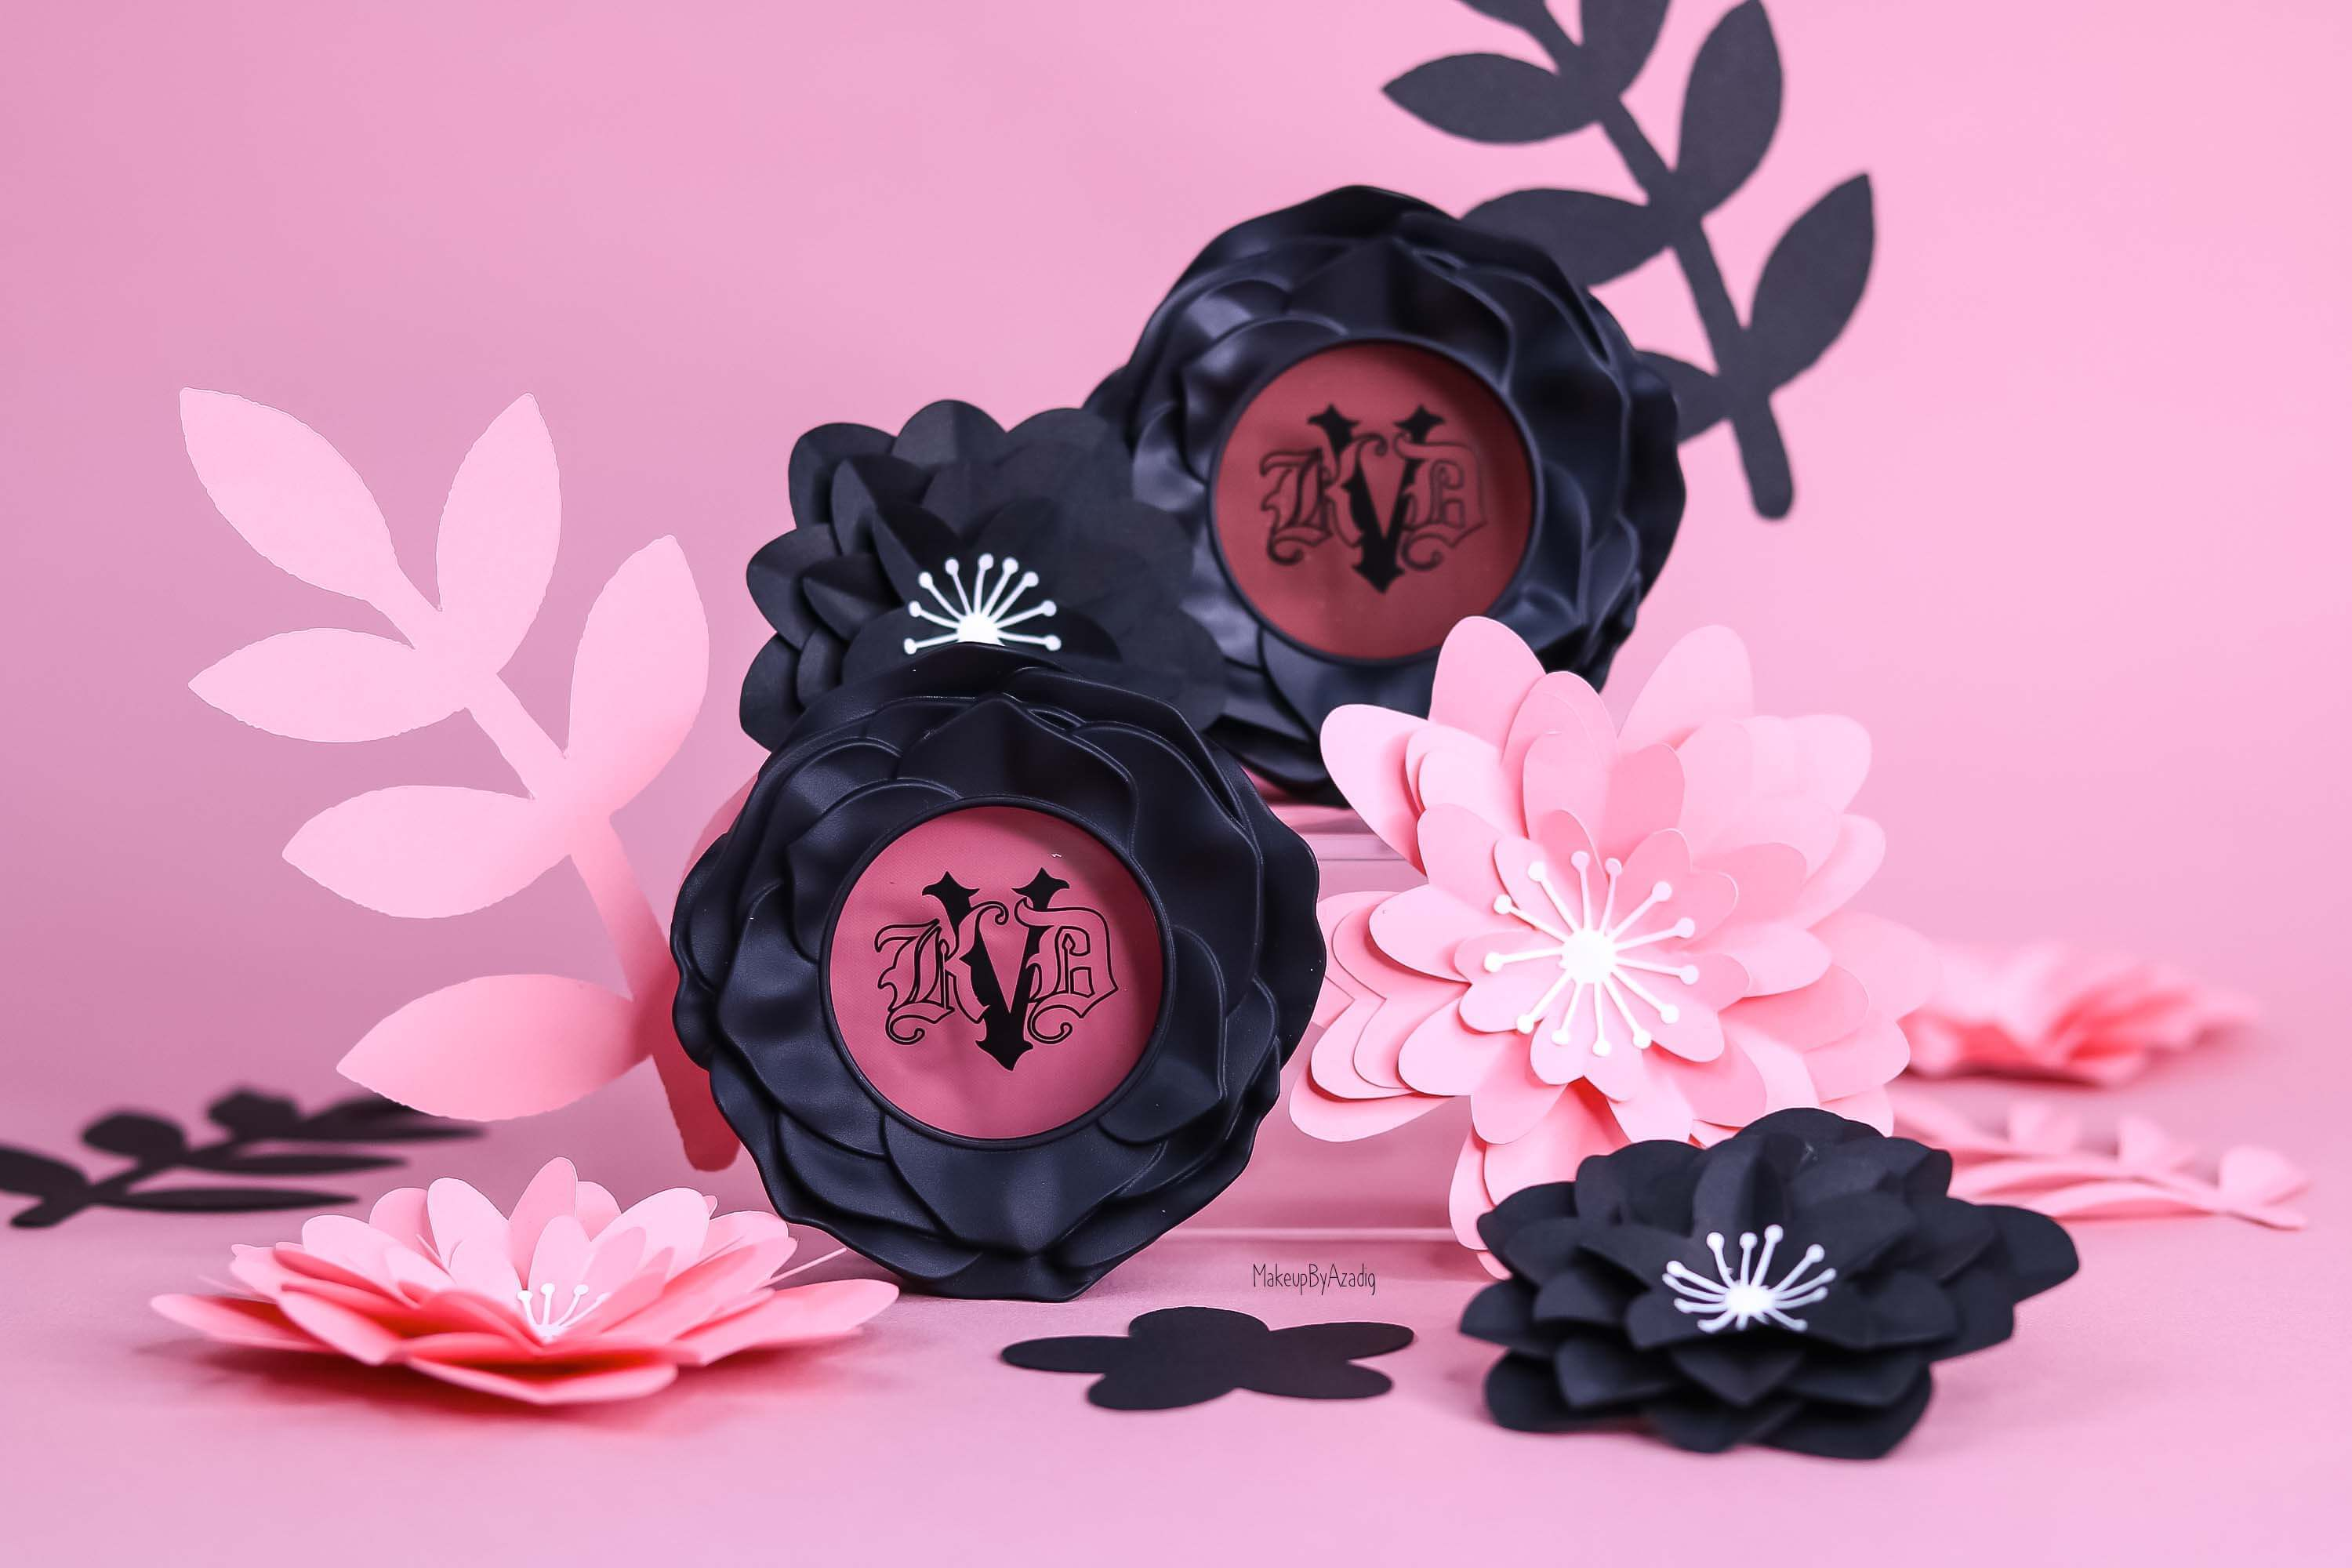 Les Blushs « Everlasting blush » de KVD VEGAN BEAUTY